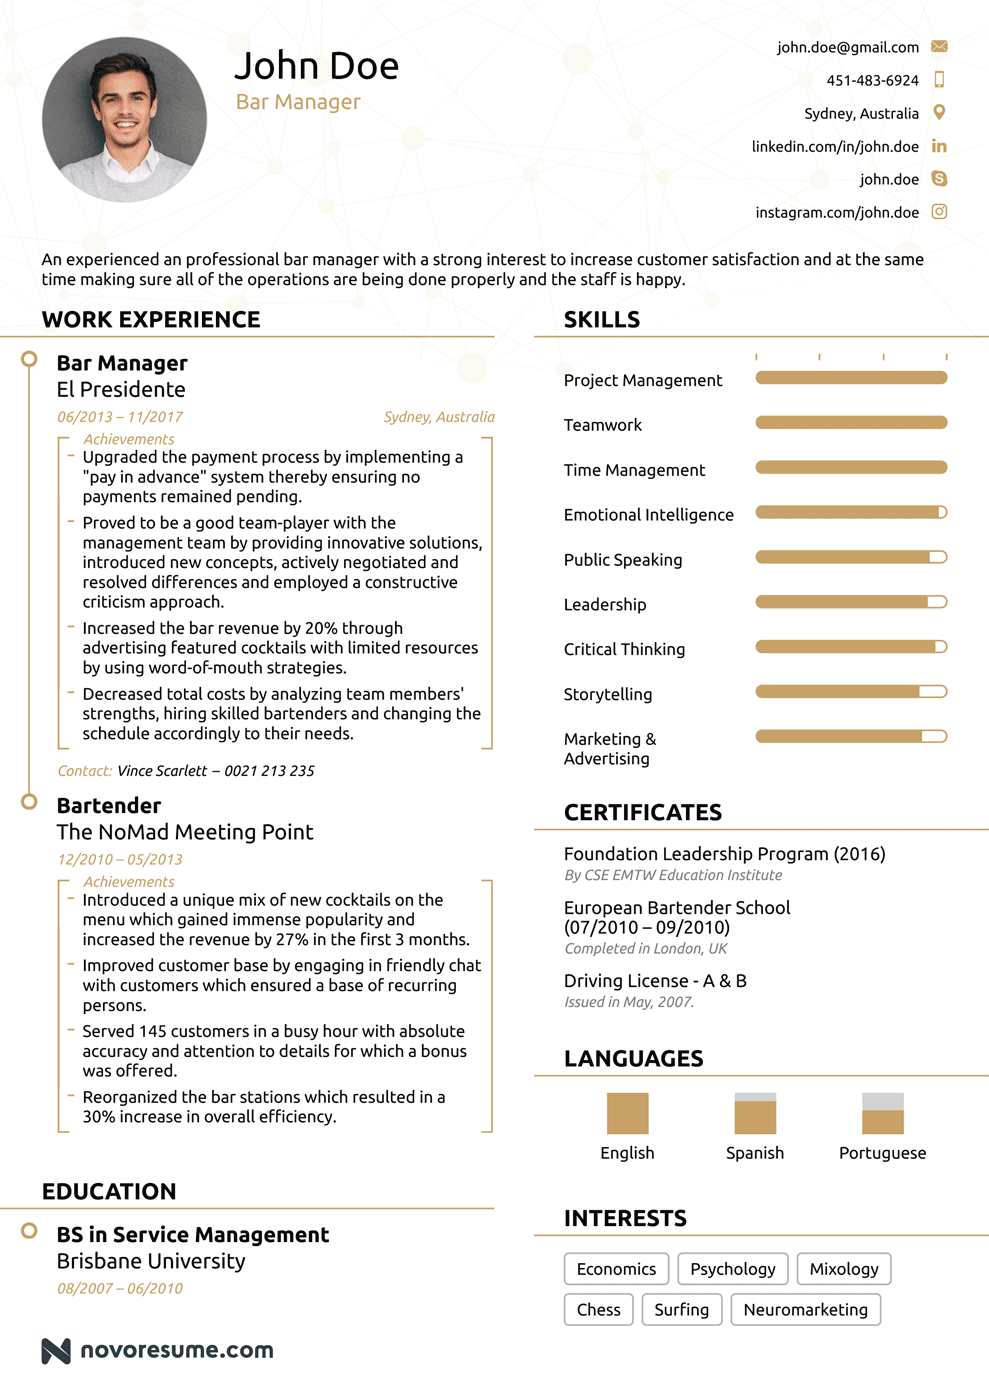 Bar & Restaurant Manager Resume Example - Update Yours for 2019